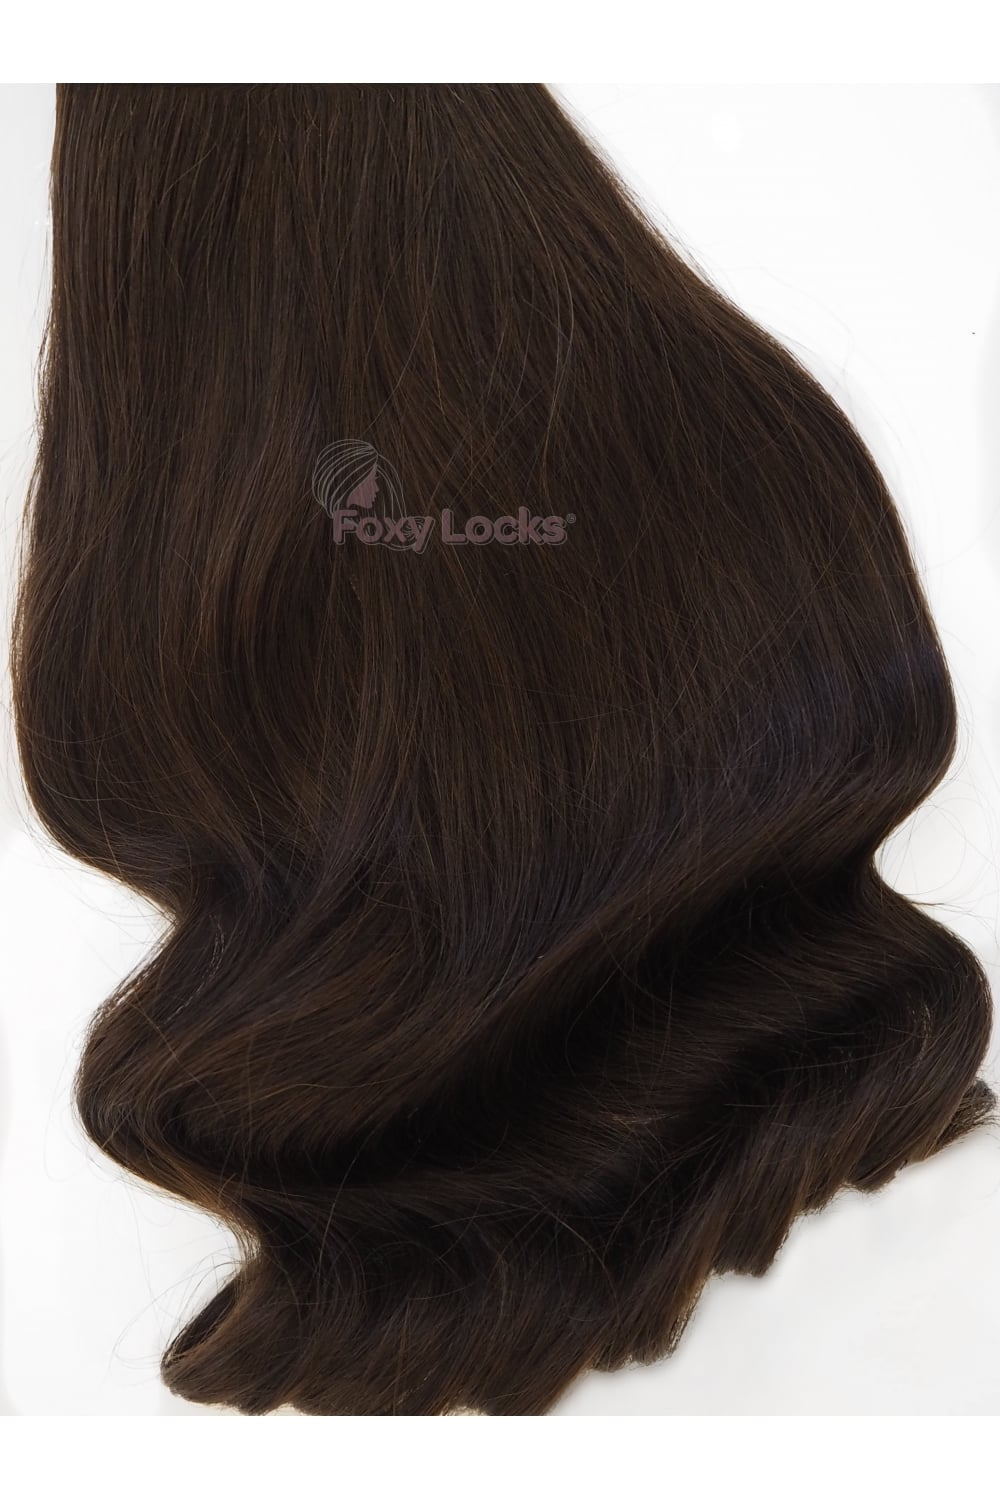 Cocoa Superior 20 Clip In Human Hair Extensions 230g